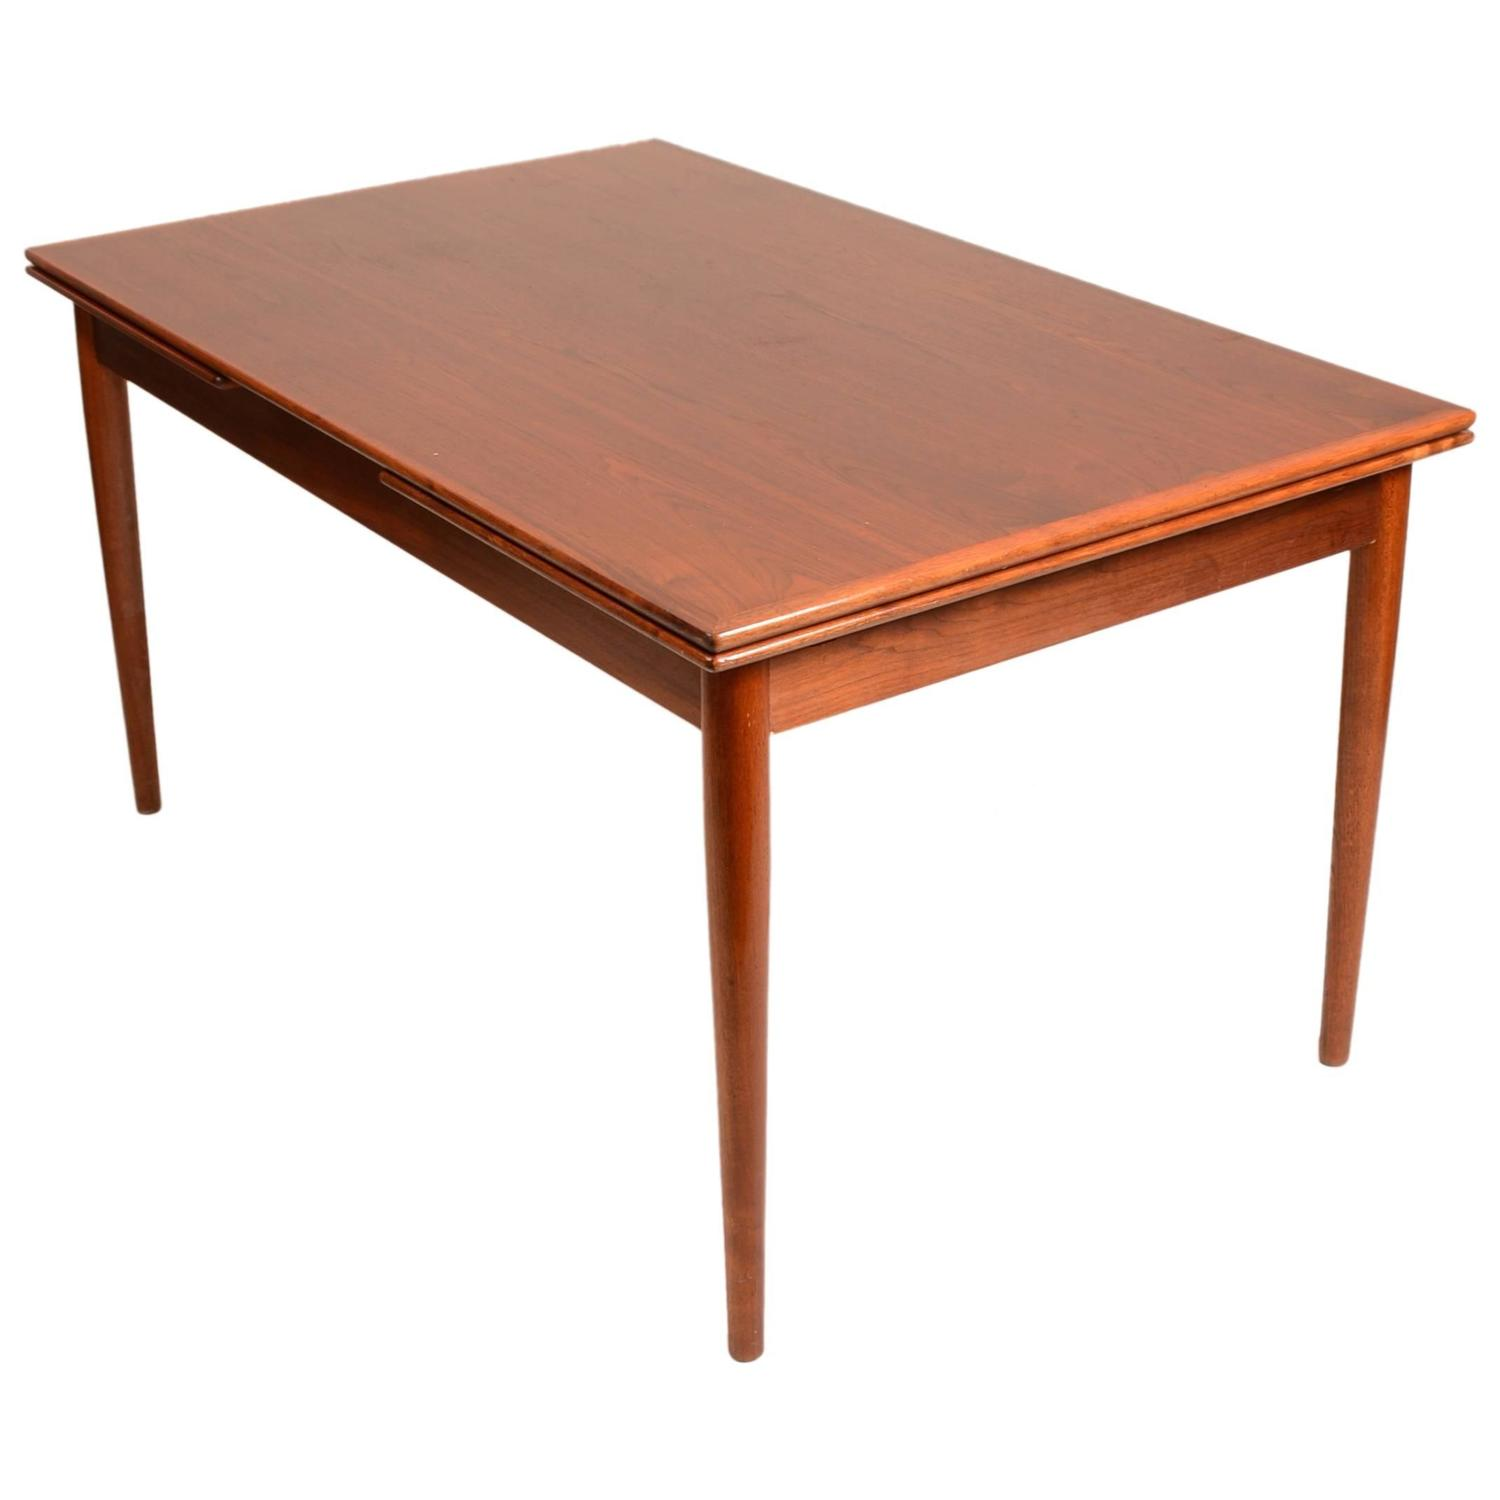 Large Danish Modern Draw Leaf Dining Table In Teak For